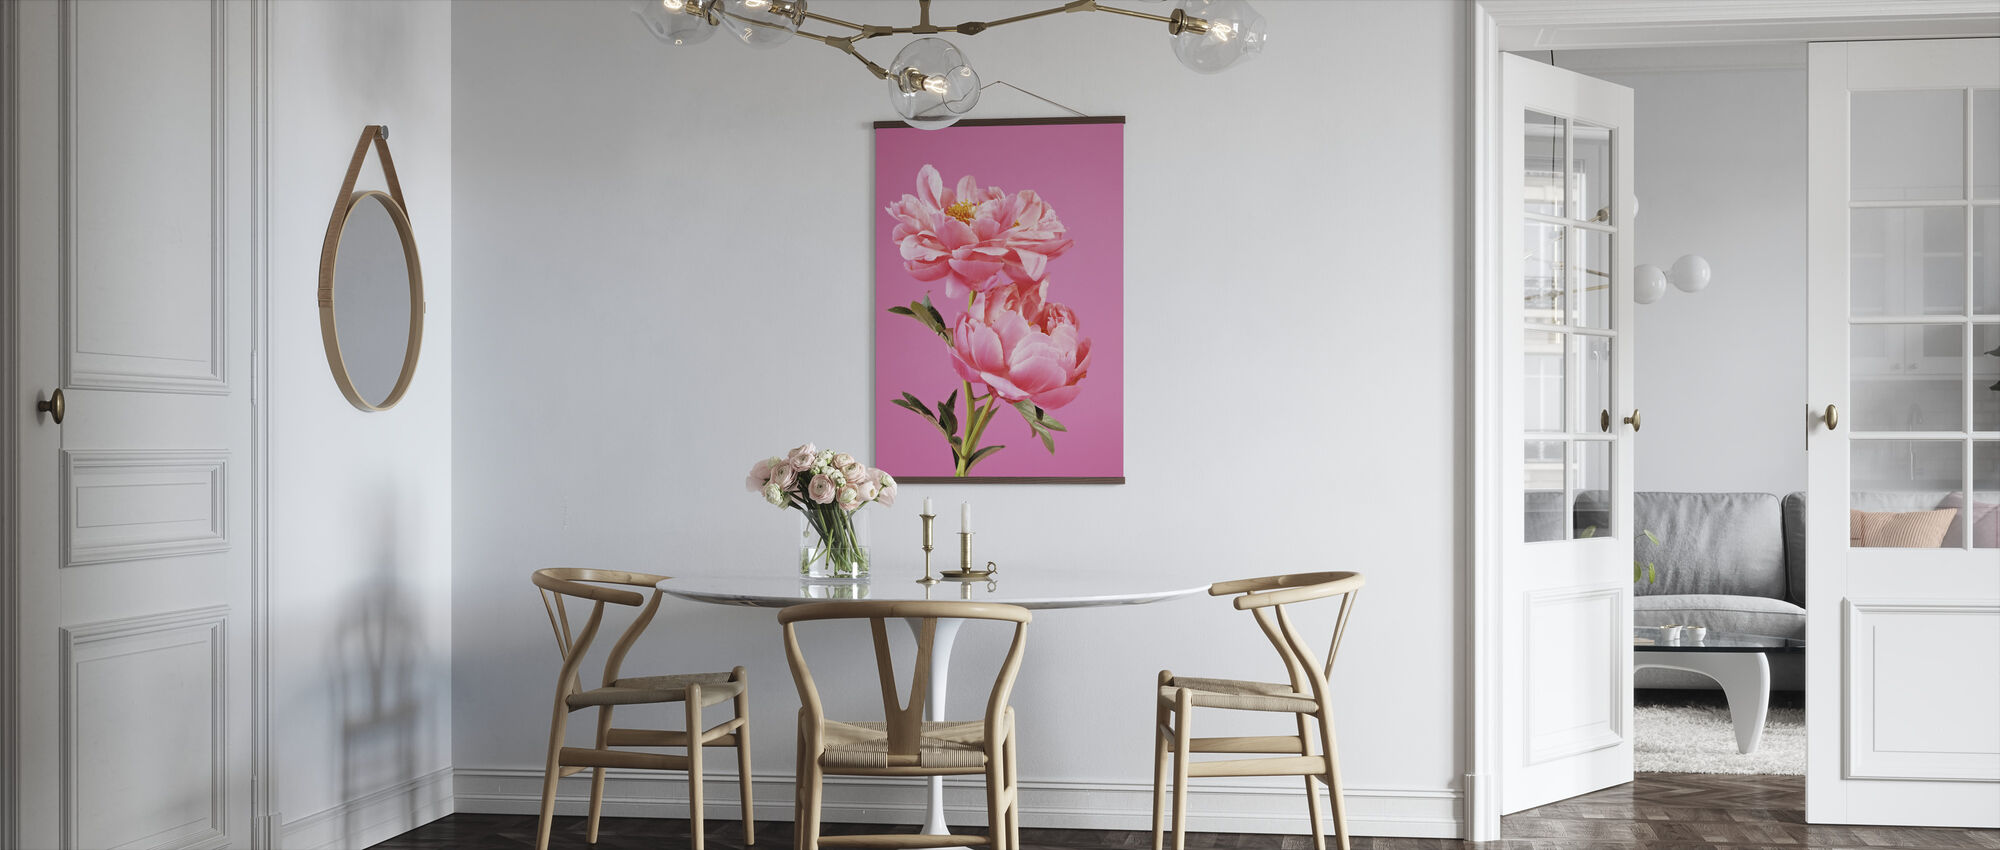 Pink Peonies - Poster - Kitchen